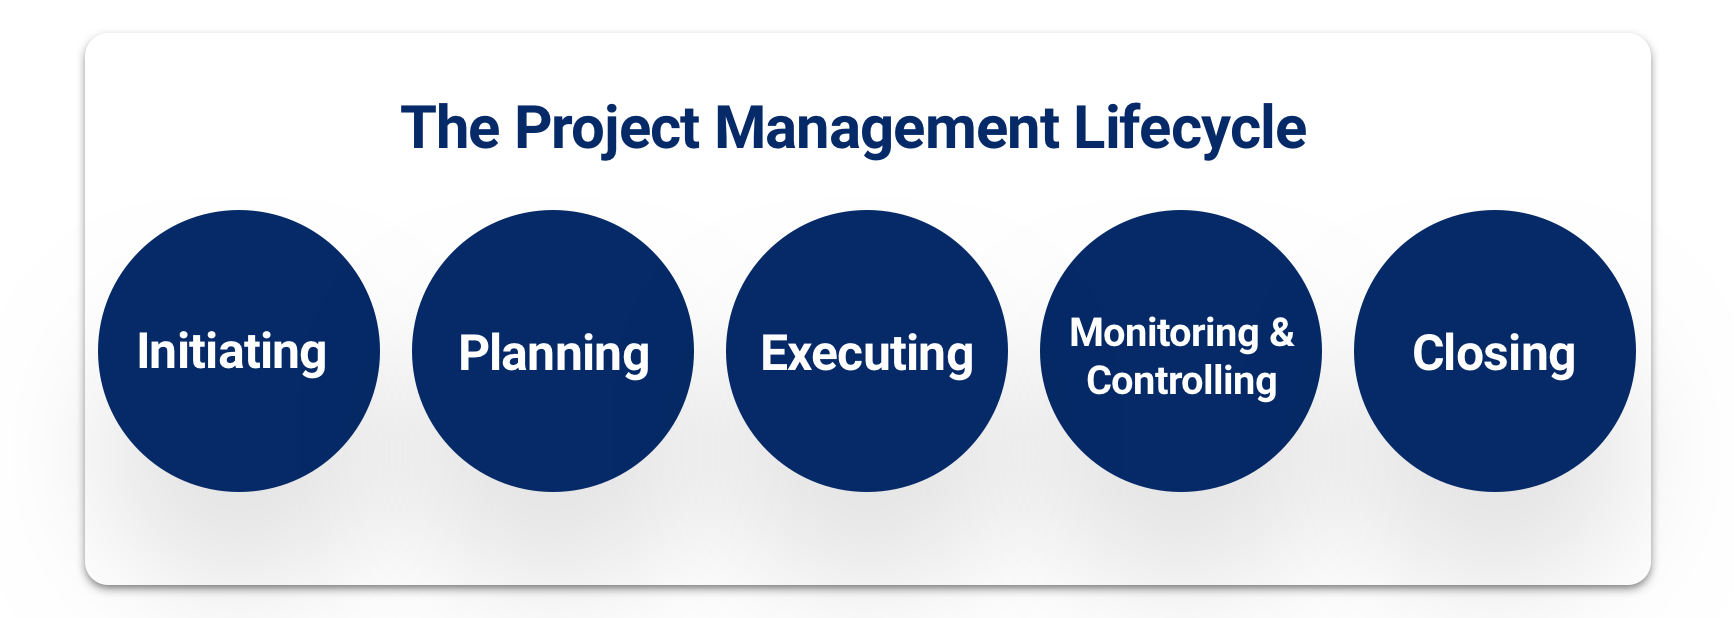 The project management lifecycle from initiating to closing.